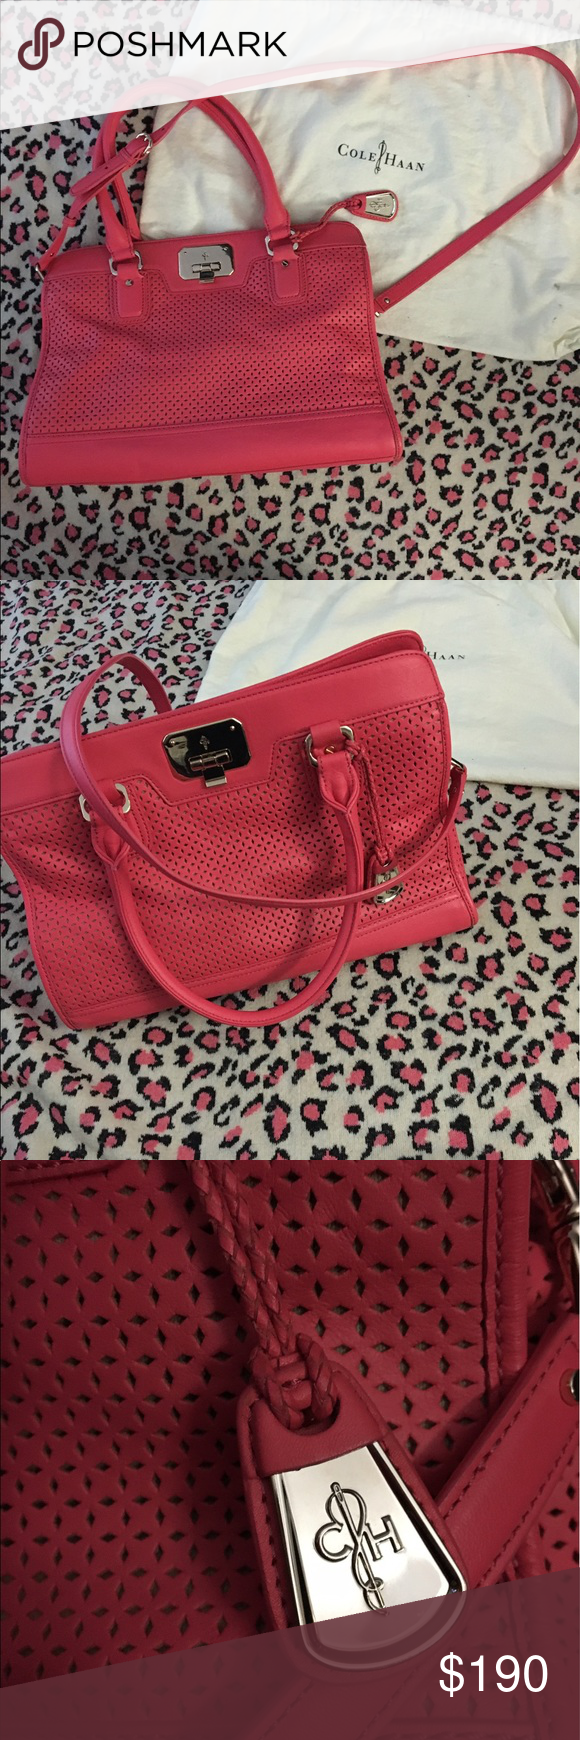 "Cole Haan Vintage Valise Kendra E/W in punch pink Super funky leather handbag in perfect condition. This beauty needs much more love than it was given 💕! Used just one time. Shoulder/cross body bag, semi-structured, with dust bag, serial #B42910. Measurements: height 10"", length 14"", width 6"" (naturally). (Inv#L18) Cole Haan Bags Crossbody Bags"